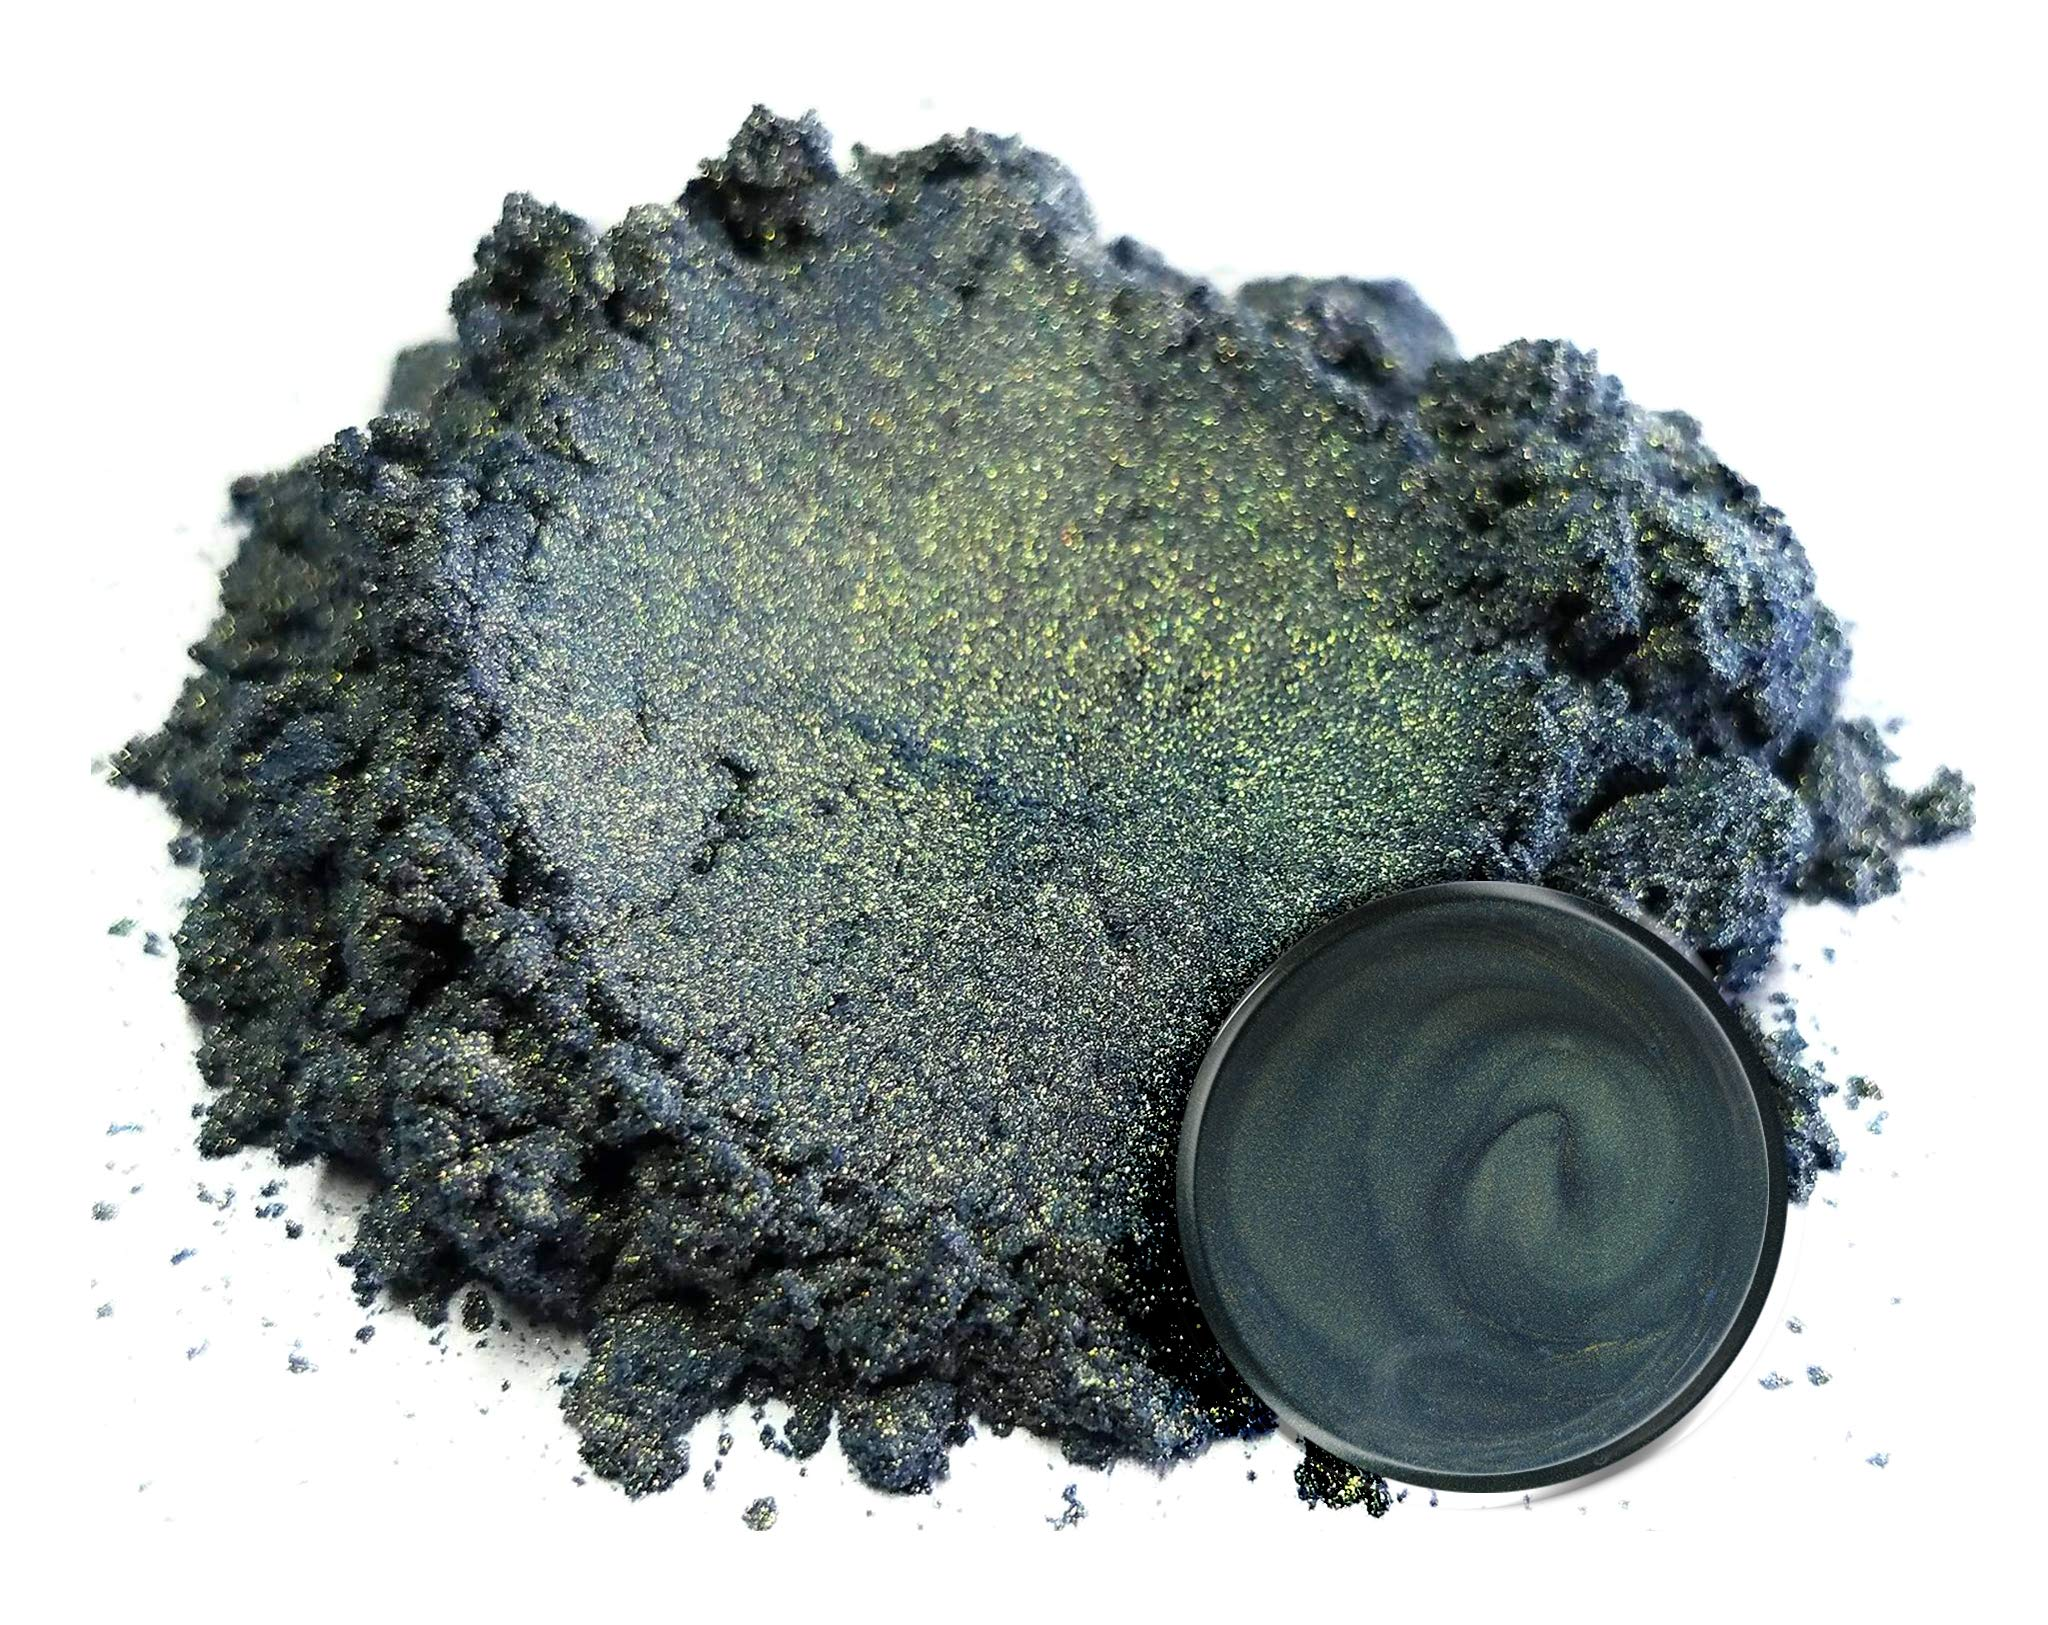 Eye Candy Mica Powder Pigment ''Beetle Blue'' (50g) Multipurpose DIY Arts and Crafts Additive | Natural Bath Bombs, Resin, Paint, Epoxy, Soap, Nail Polish, Lip Balm by Eye Candy